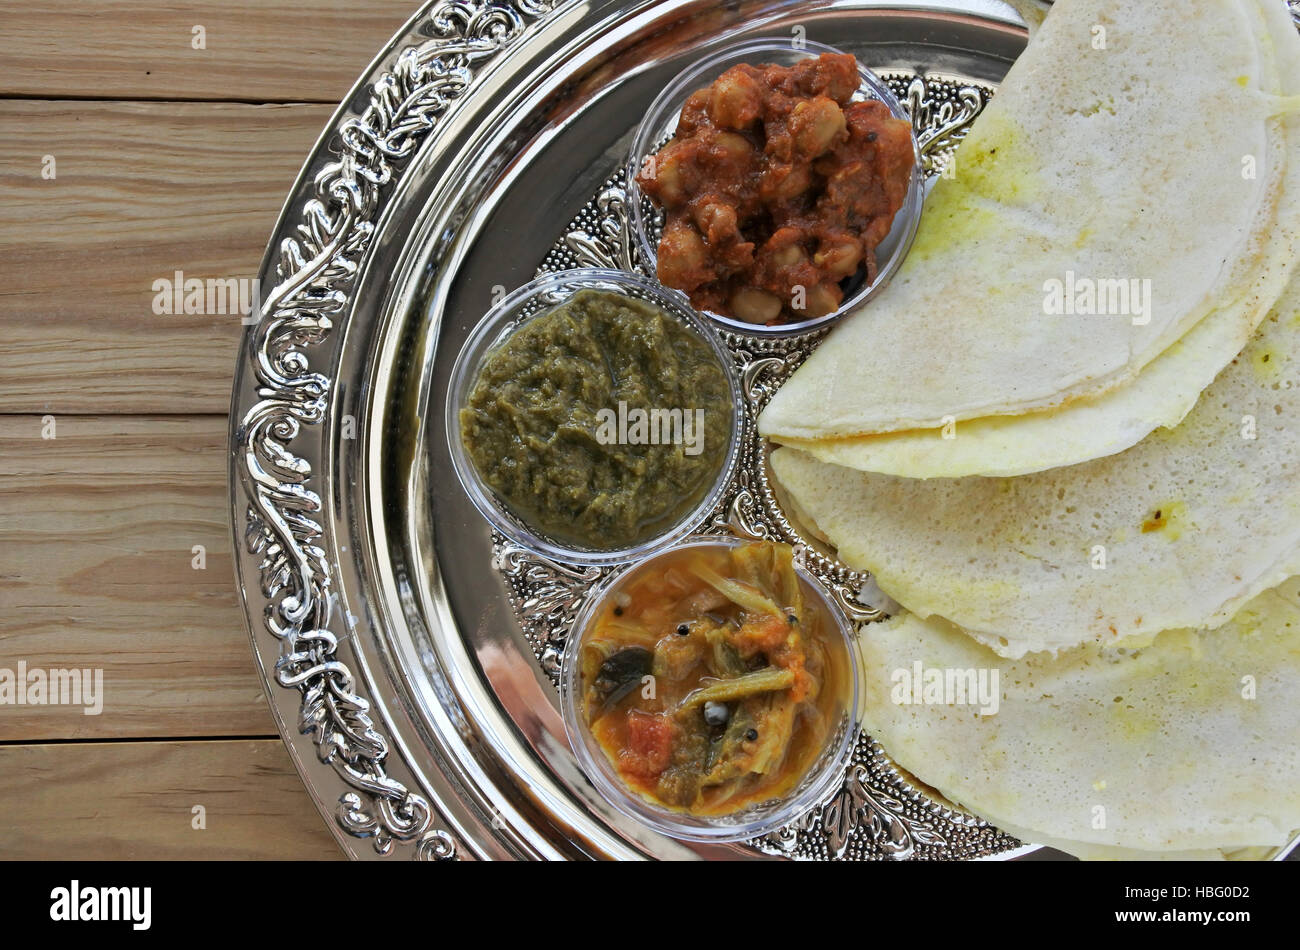 Flat lay of Indian food, Masala Dosa with Sambar and Channa Masala. Food background and texture. copy space - Stock Image